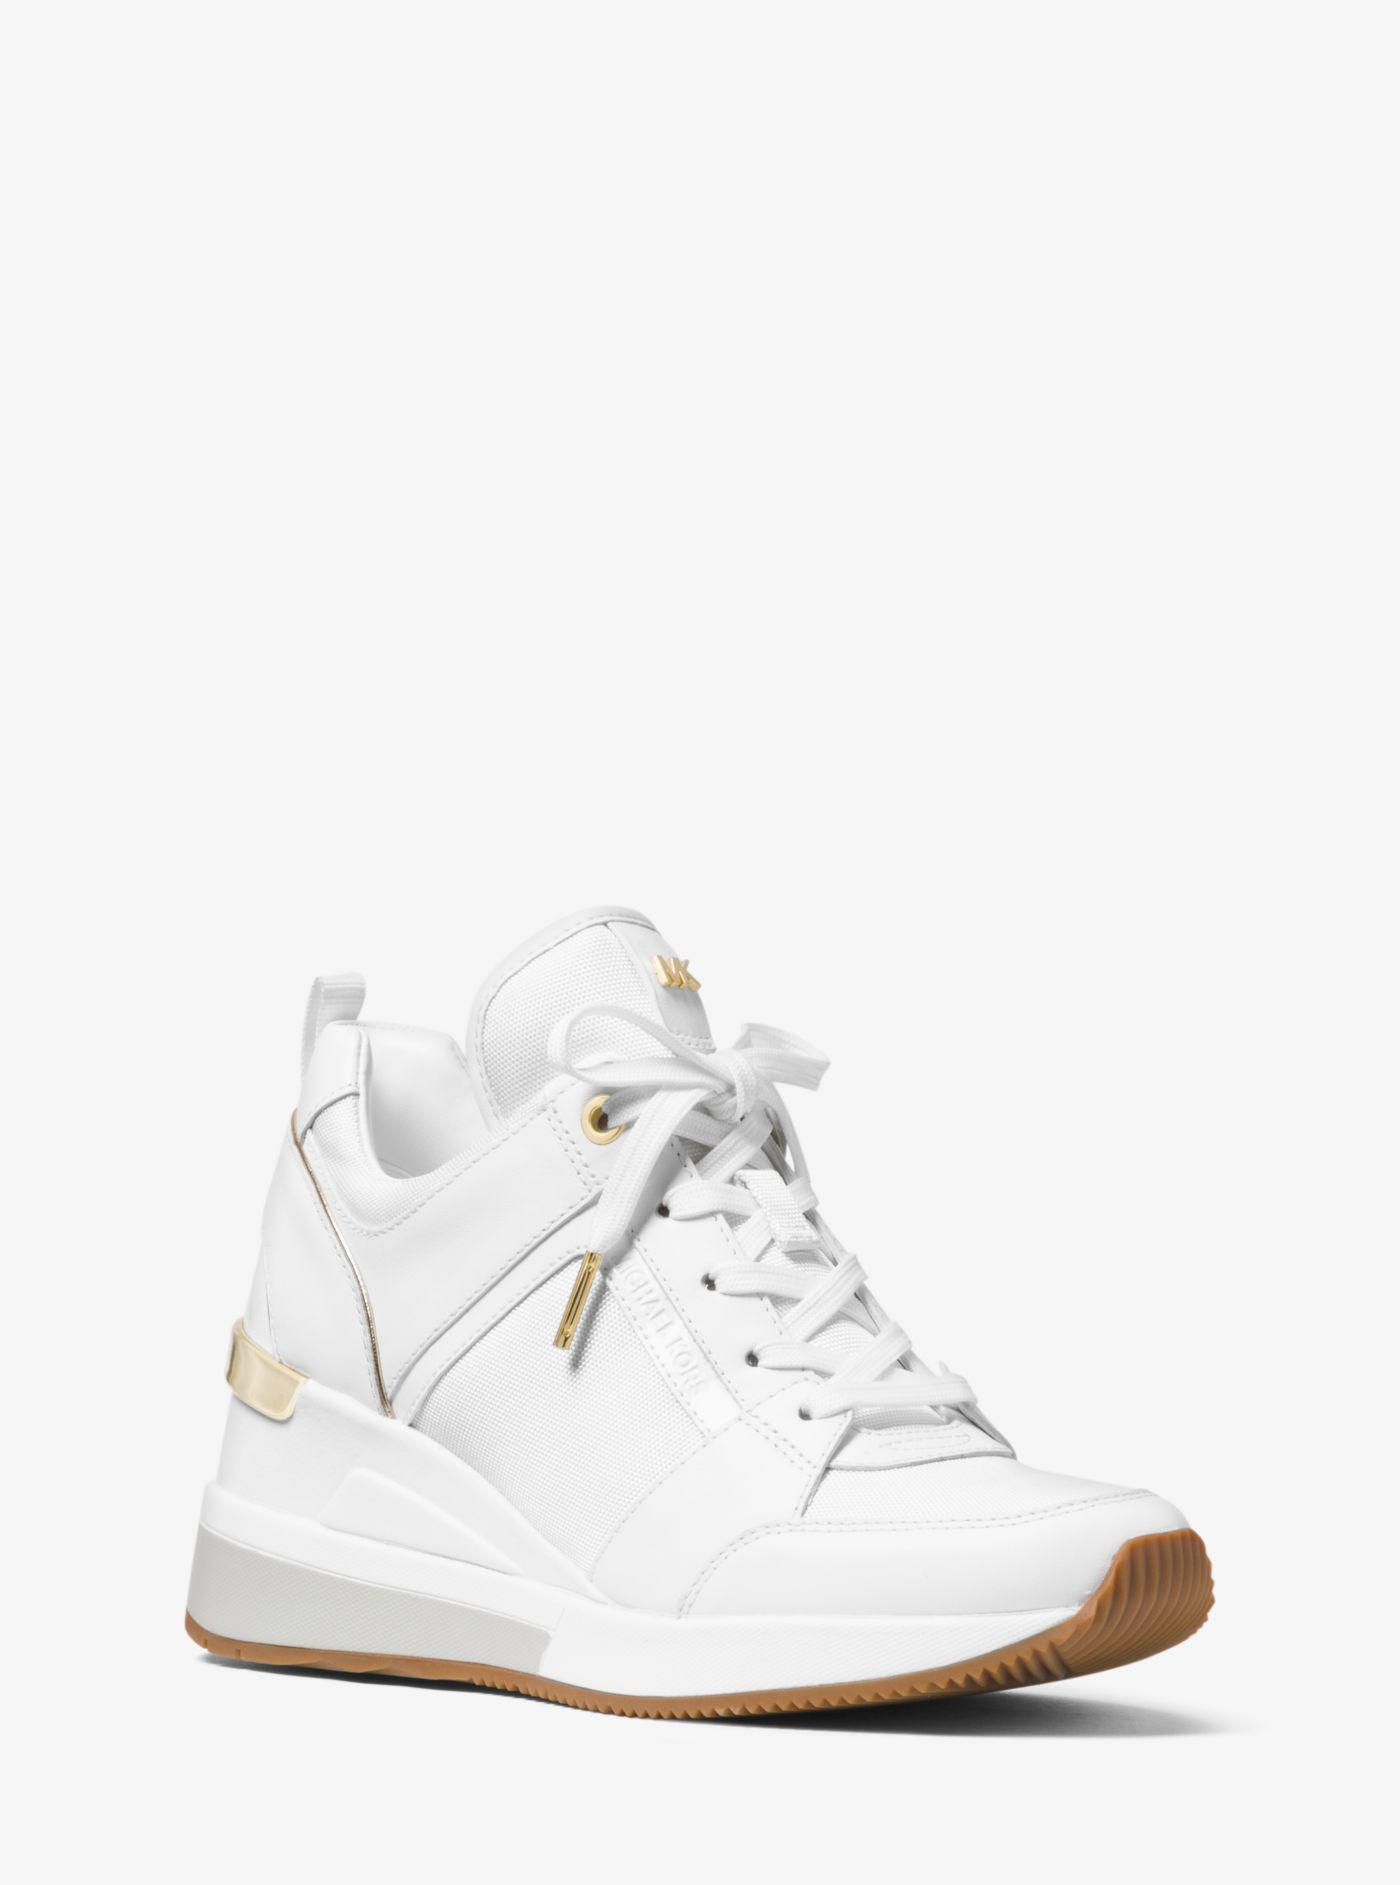 36654924f71c Lyst - Michael Kors Georgie Canvas And Leather Sneaker in White